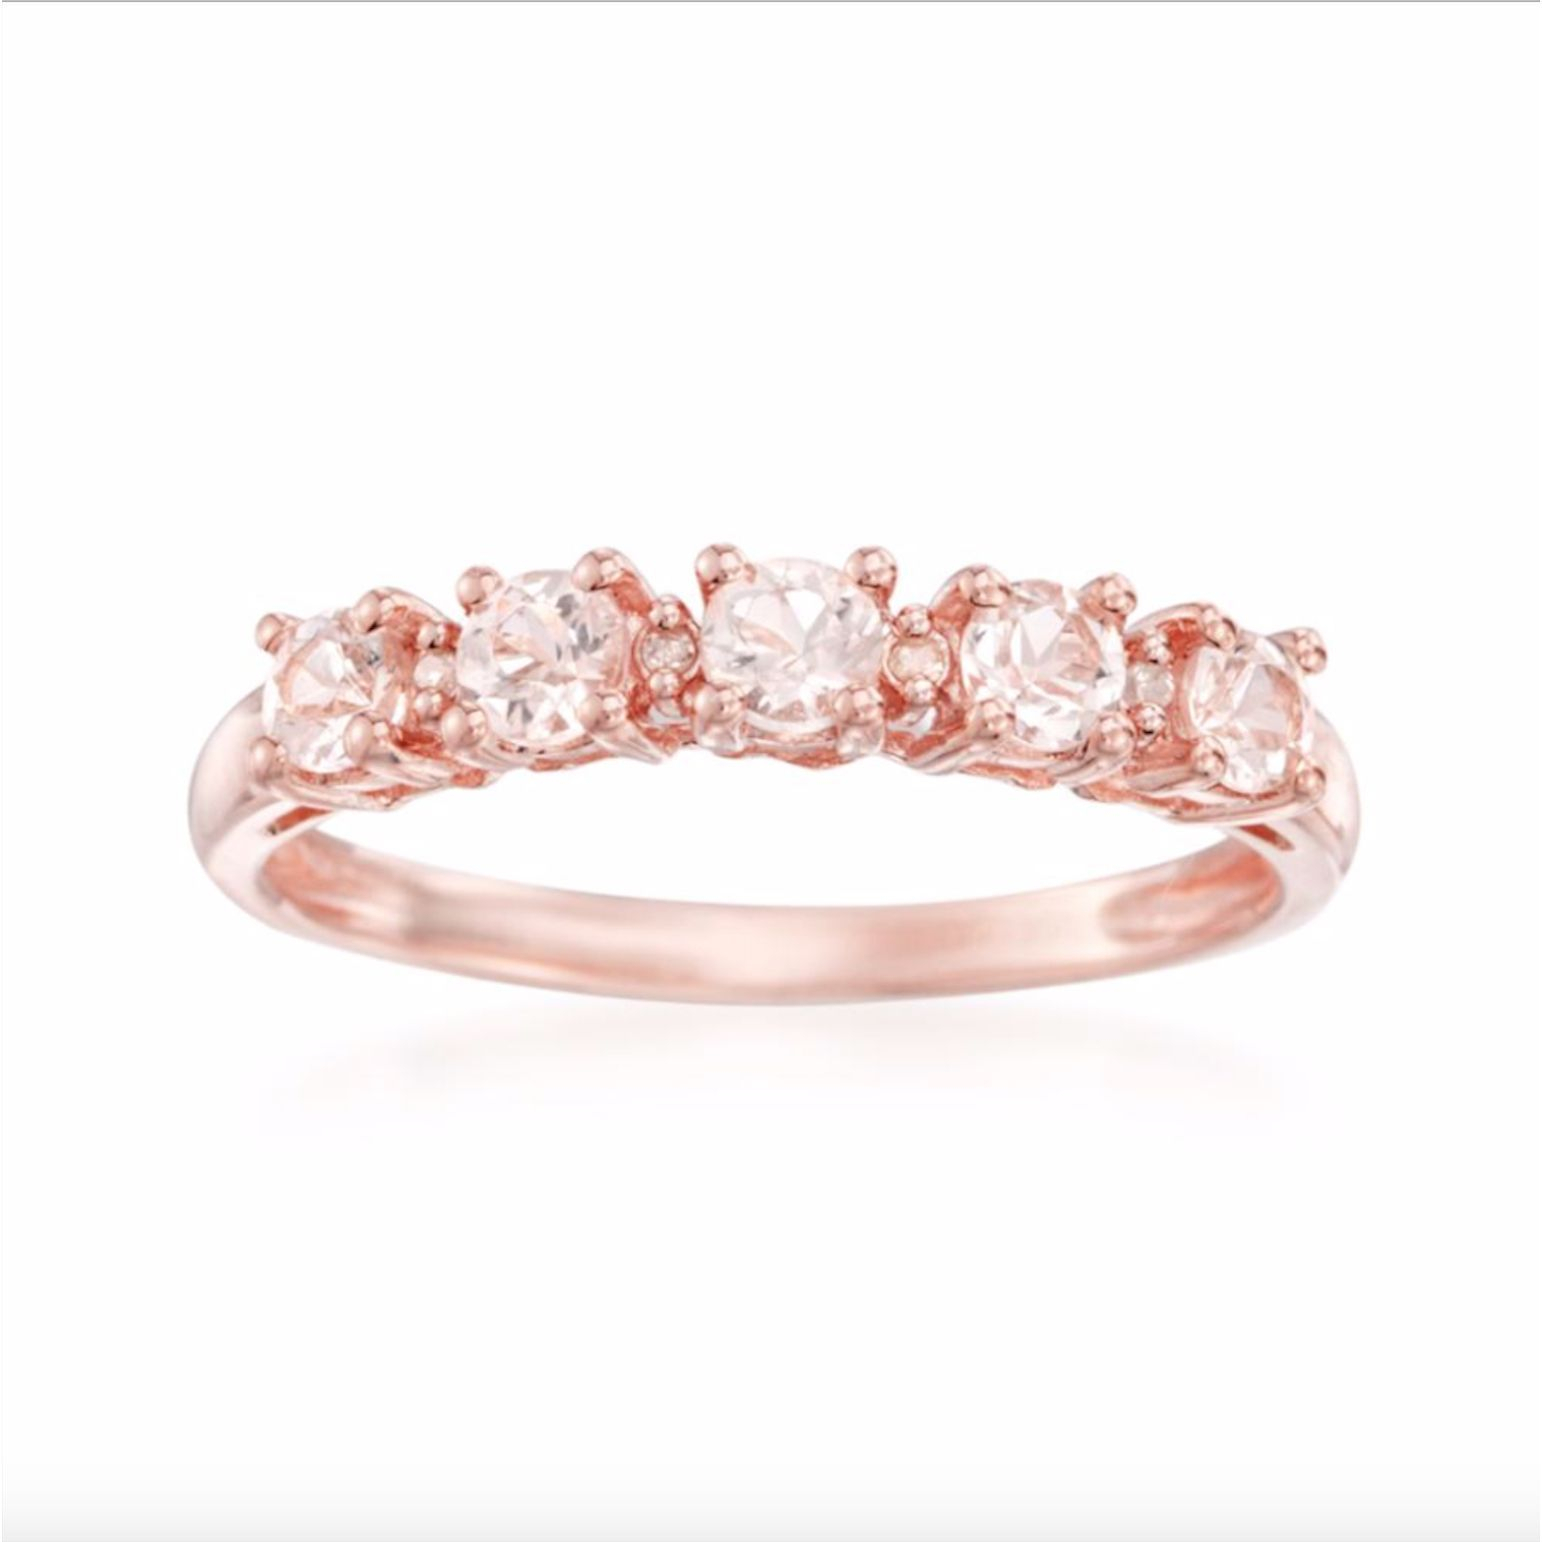 Five Sparkling Morganite Gemstones Are Set Along The Face Of The For Current Simple Sparkling Band Rings (View 16 of 25)